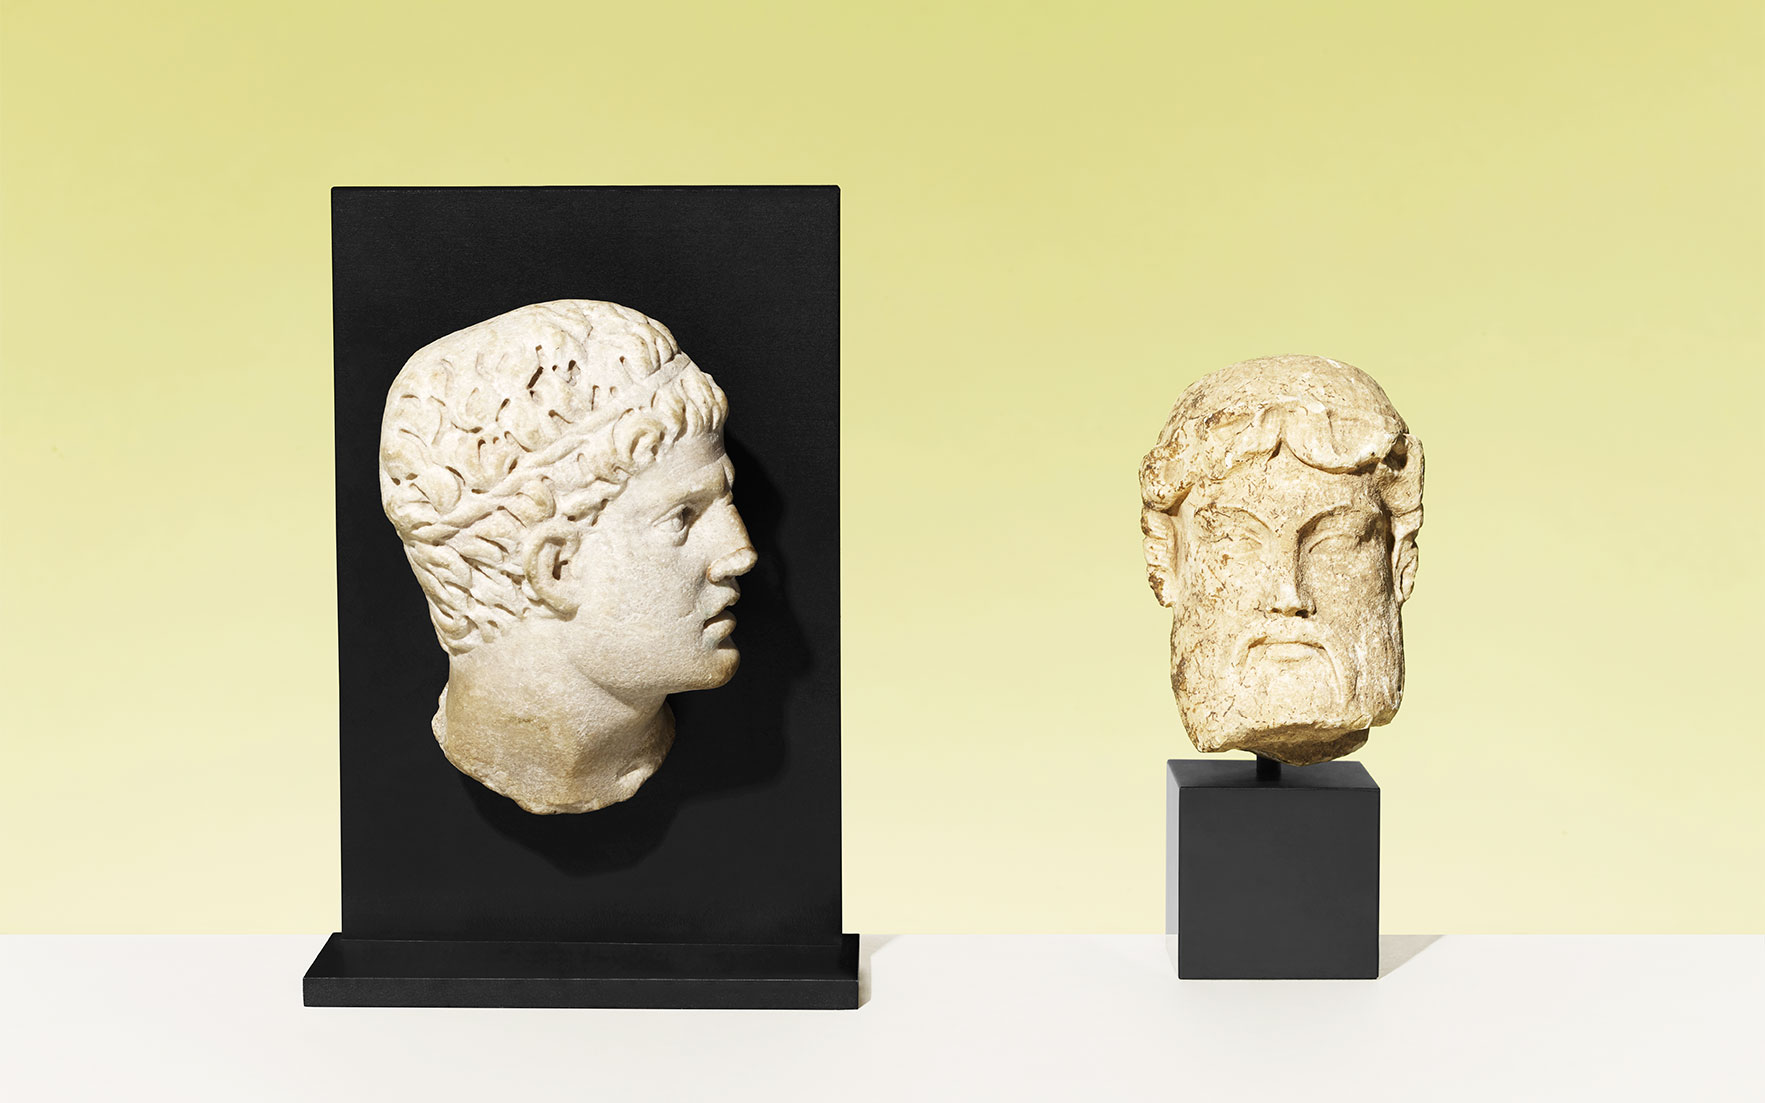 A Roman marble relief head of Meleager, circa 2nd century AD. 6¼ in (16 cm) high. Sold for £8,125. A Roman marble archaistic head of Hermes, circa 1st century BC. 5¼ in (13.5